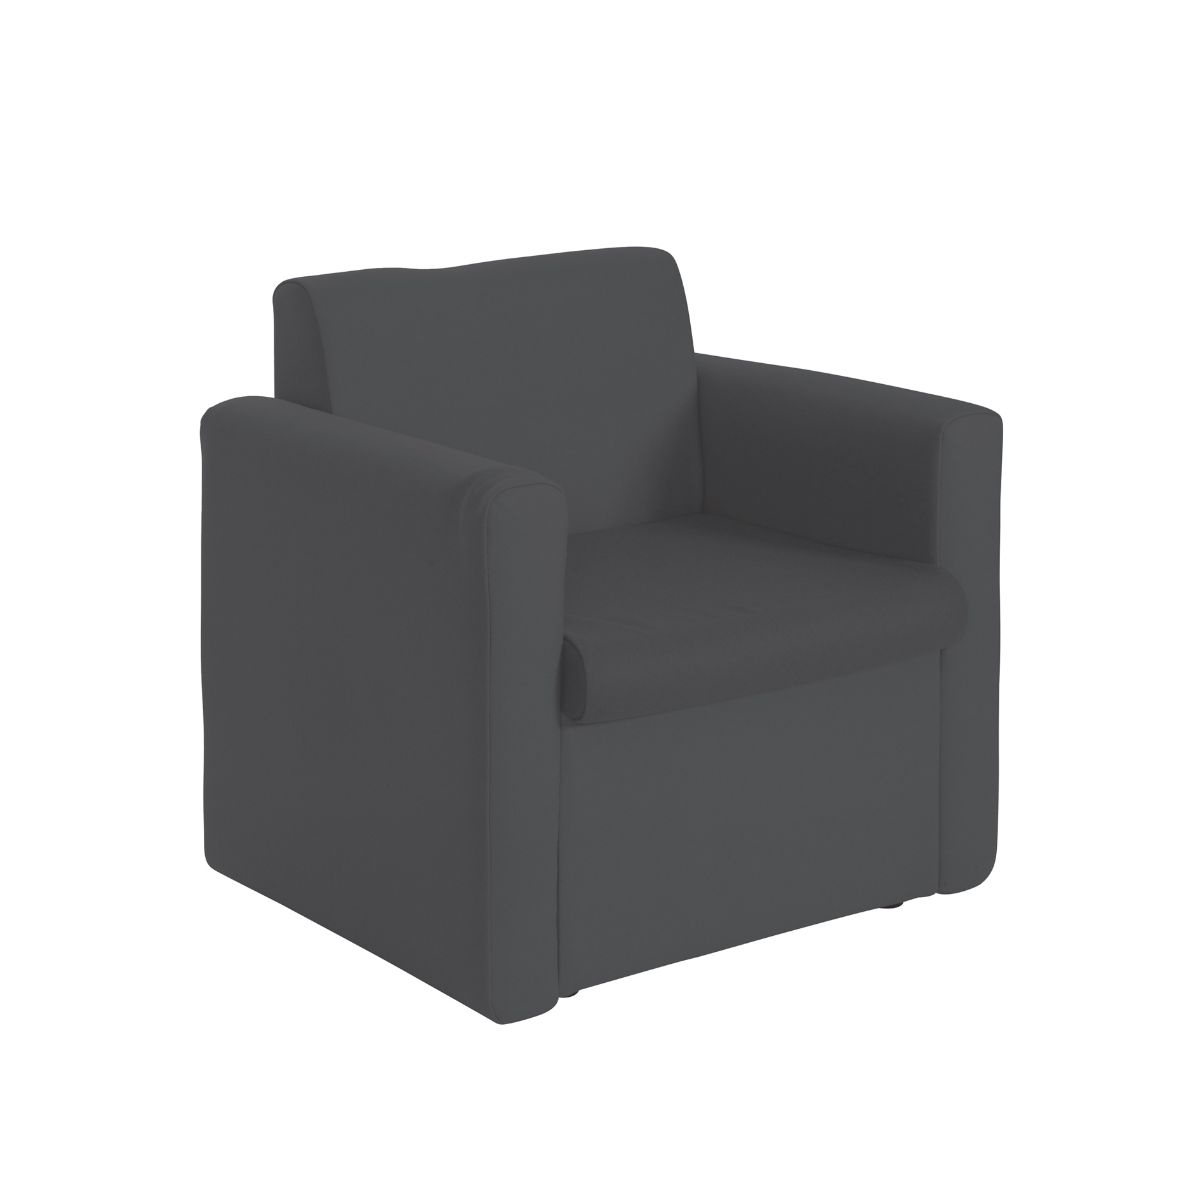 Alto Reception Unit Armchair, Charcoal